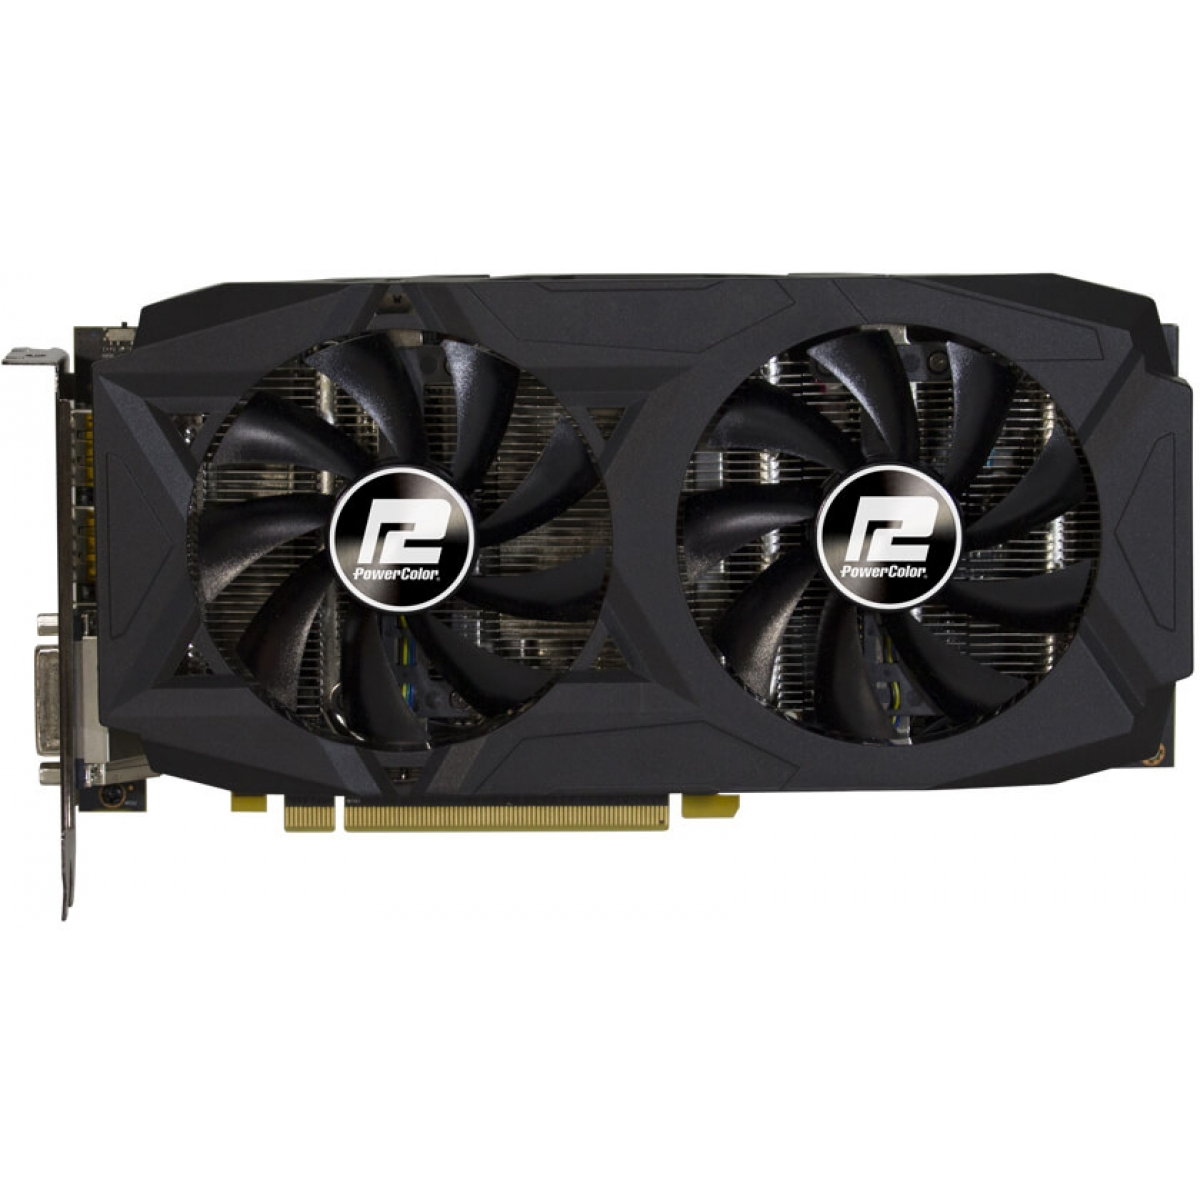 Placa de Vídeo PowerColor Radeon Red Dragon RX 580 8GB AXRX 580 8GBD5-3DHDV2/OC 256Bit GDDR5 PCI-EXP